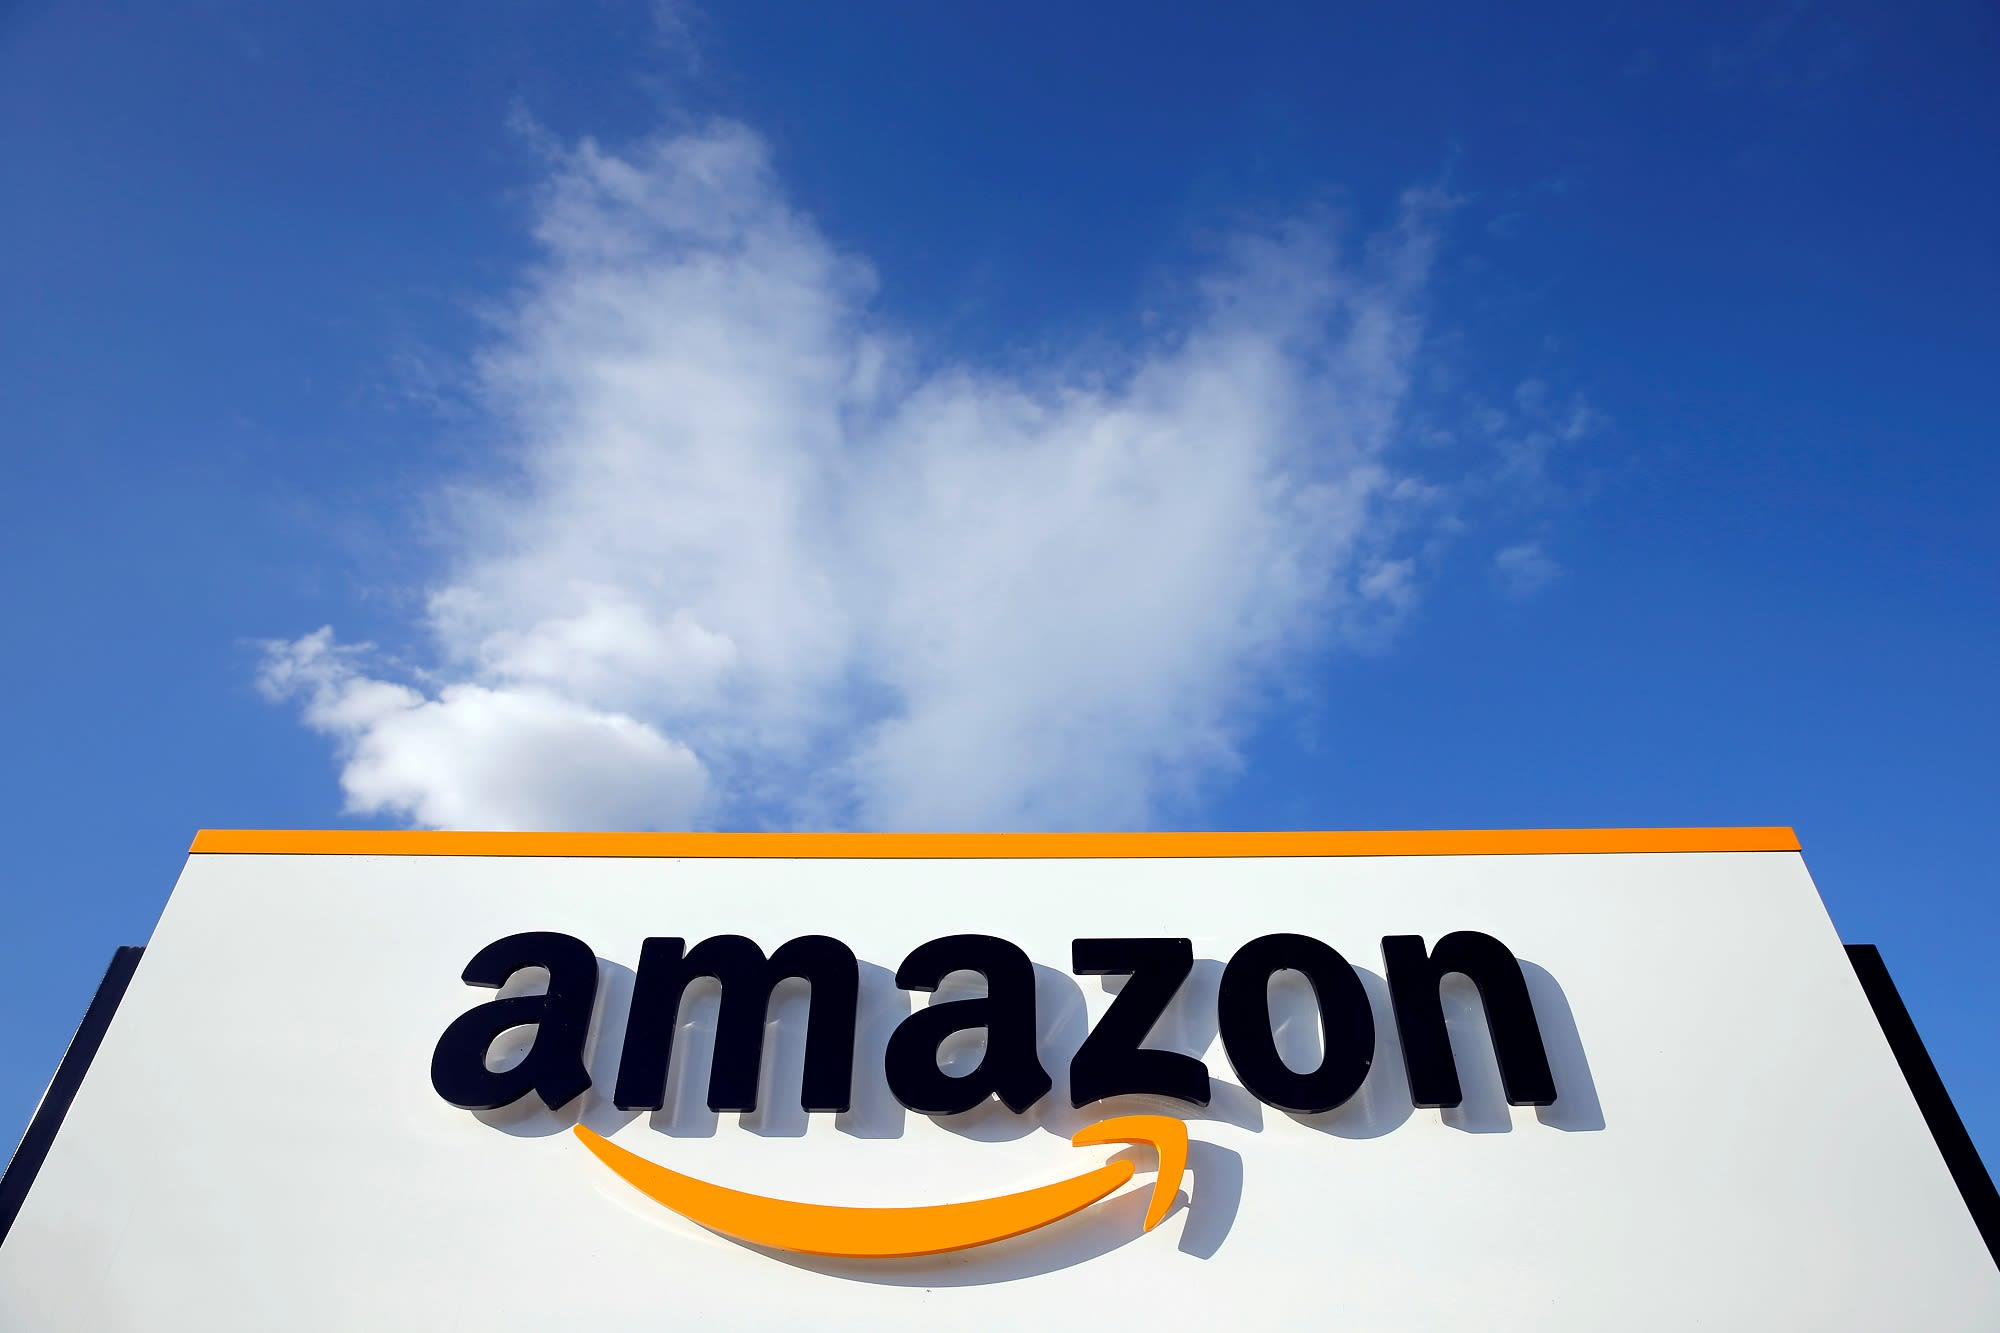 Former Amazon recruiters share their tips on how to land a job there